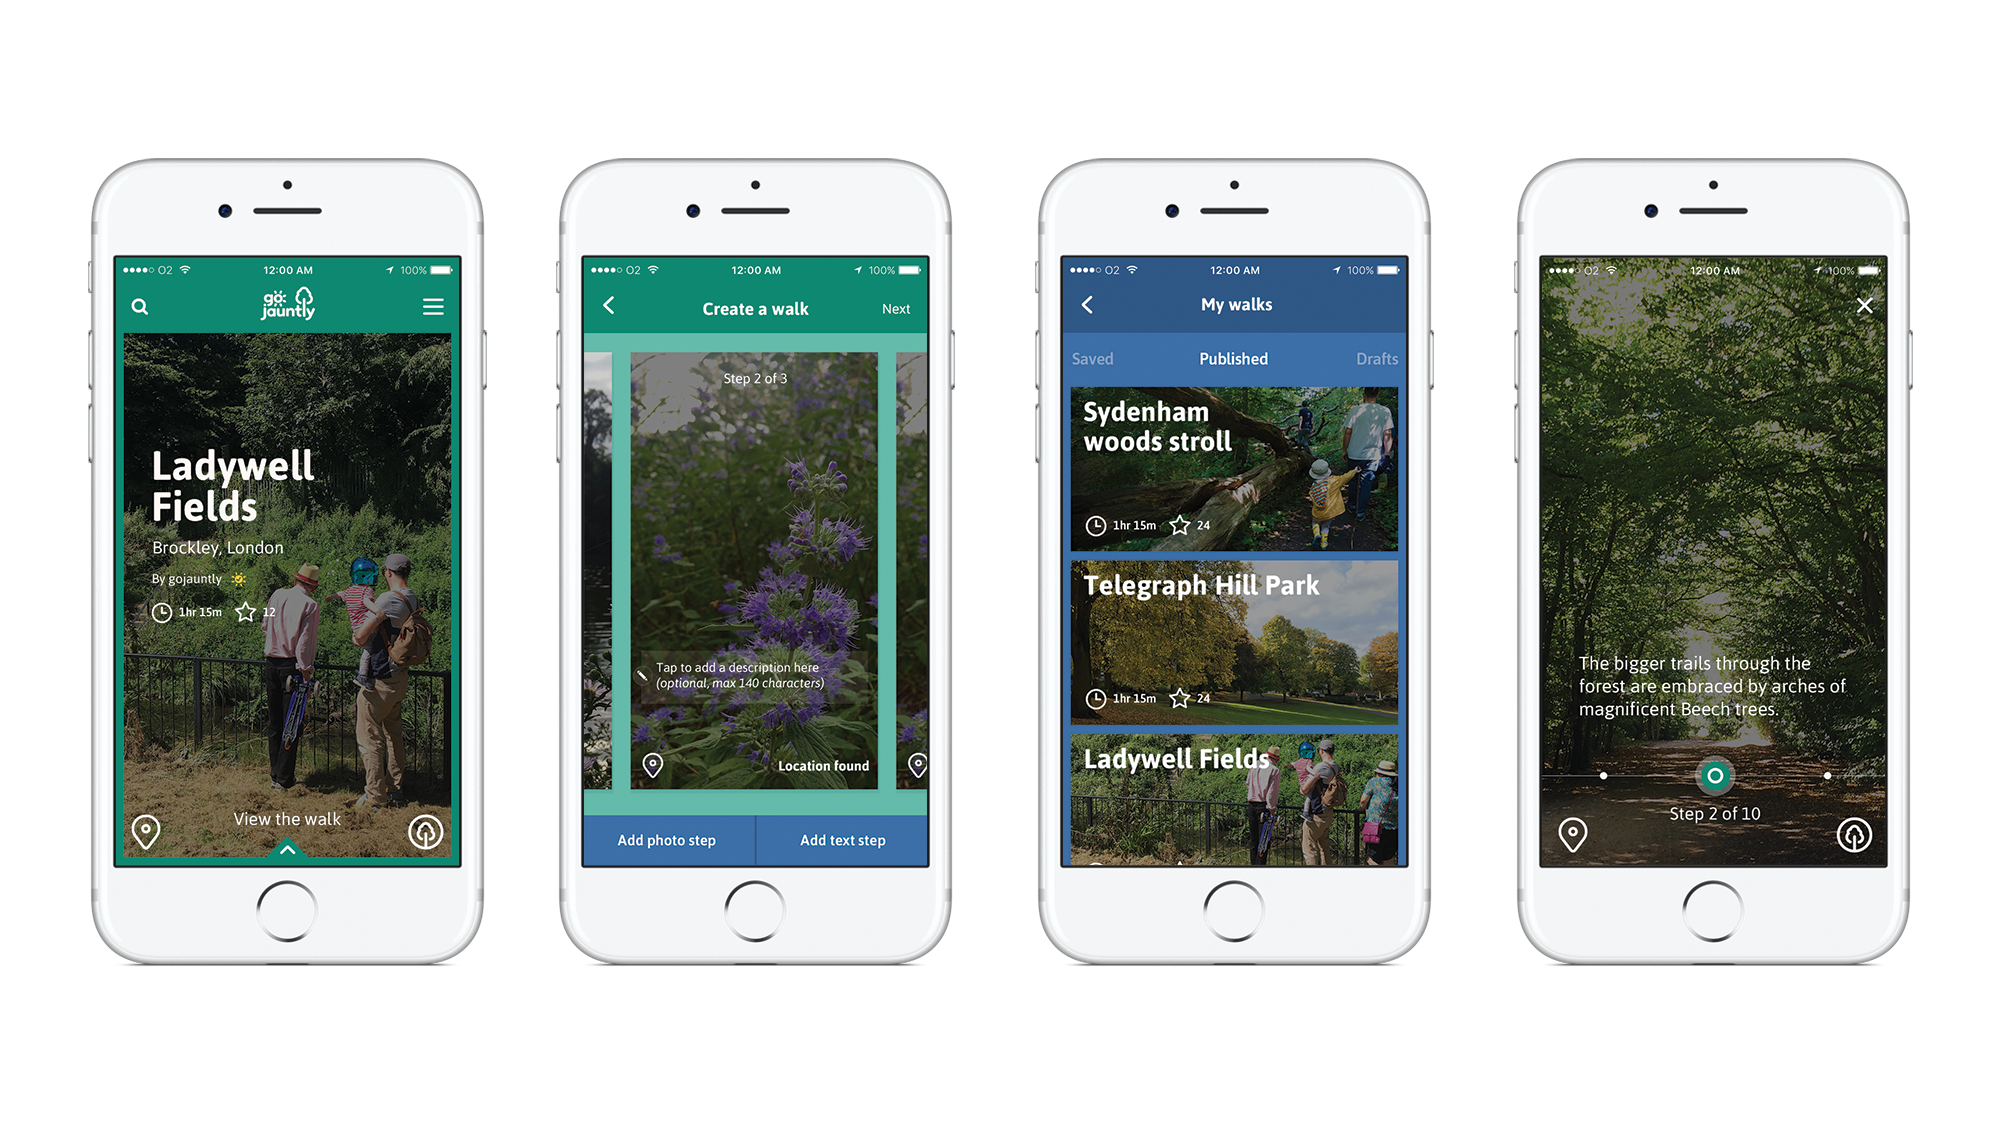 Go Jauntly App set to make outdoor adventure a walk in the park